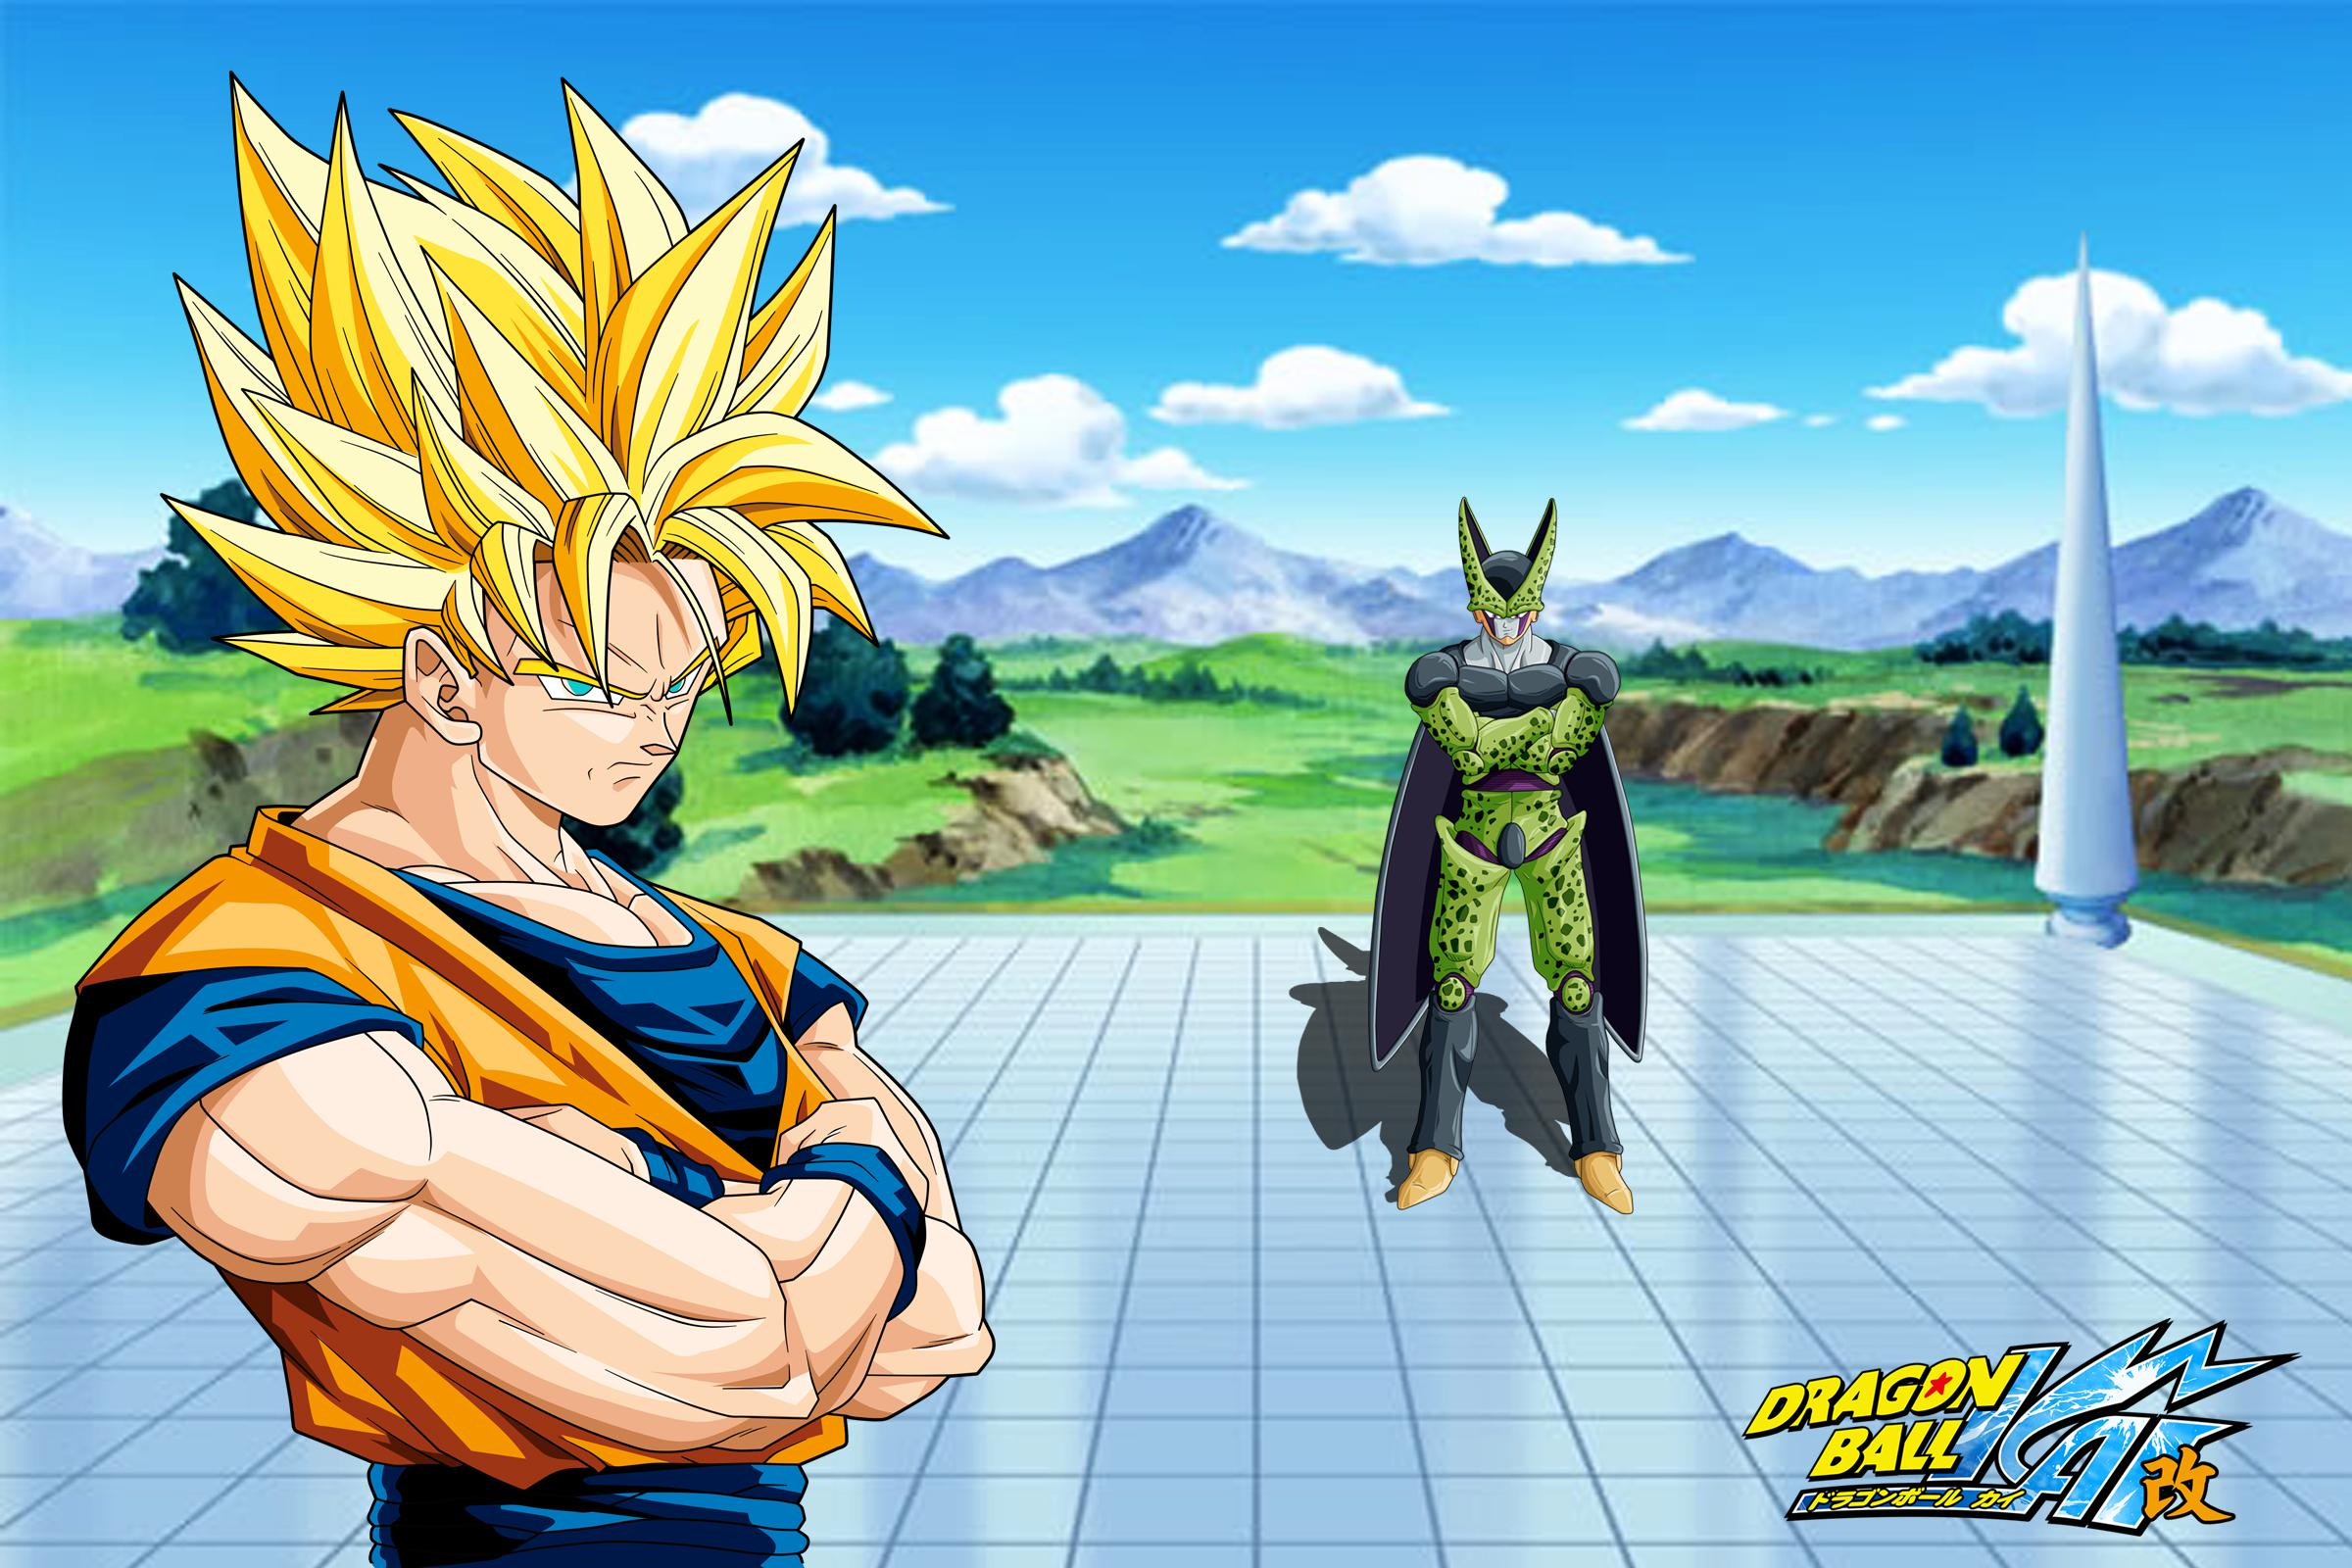 Dragon ball z wallpapers pictures images - Dragon bale z ...